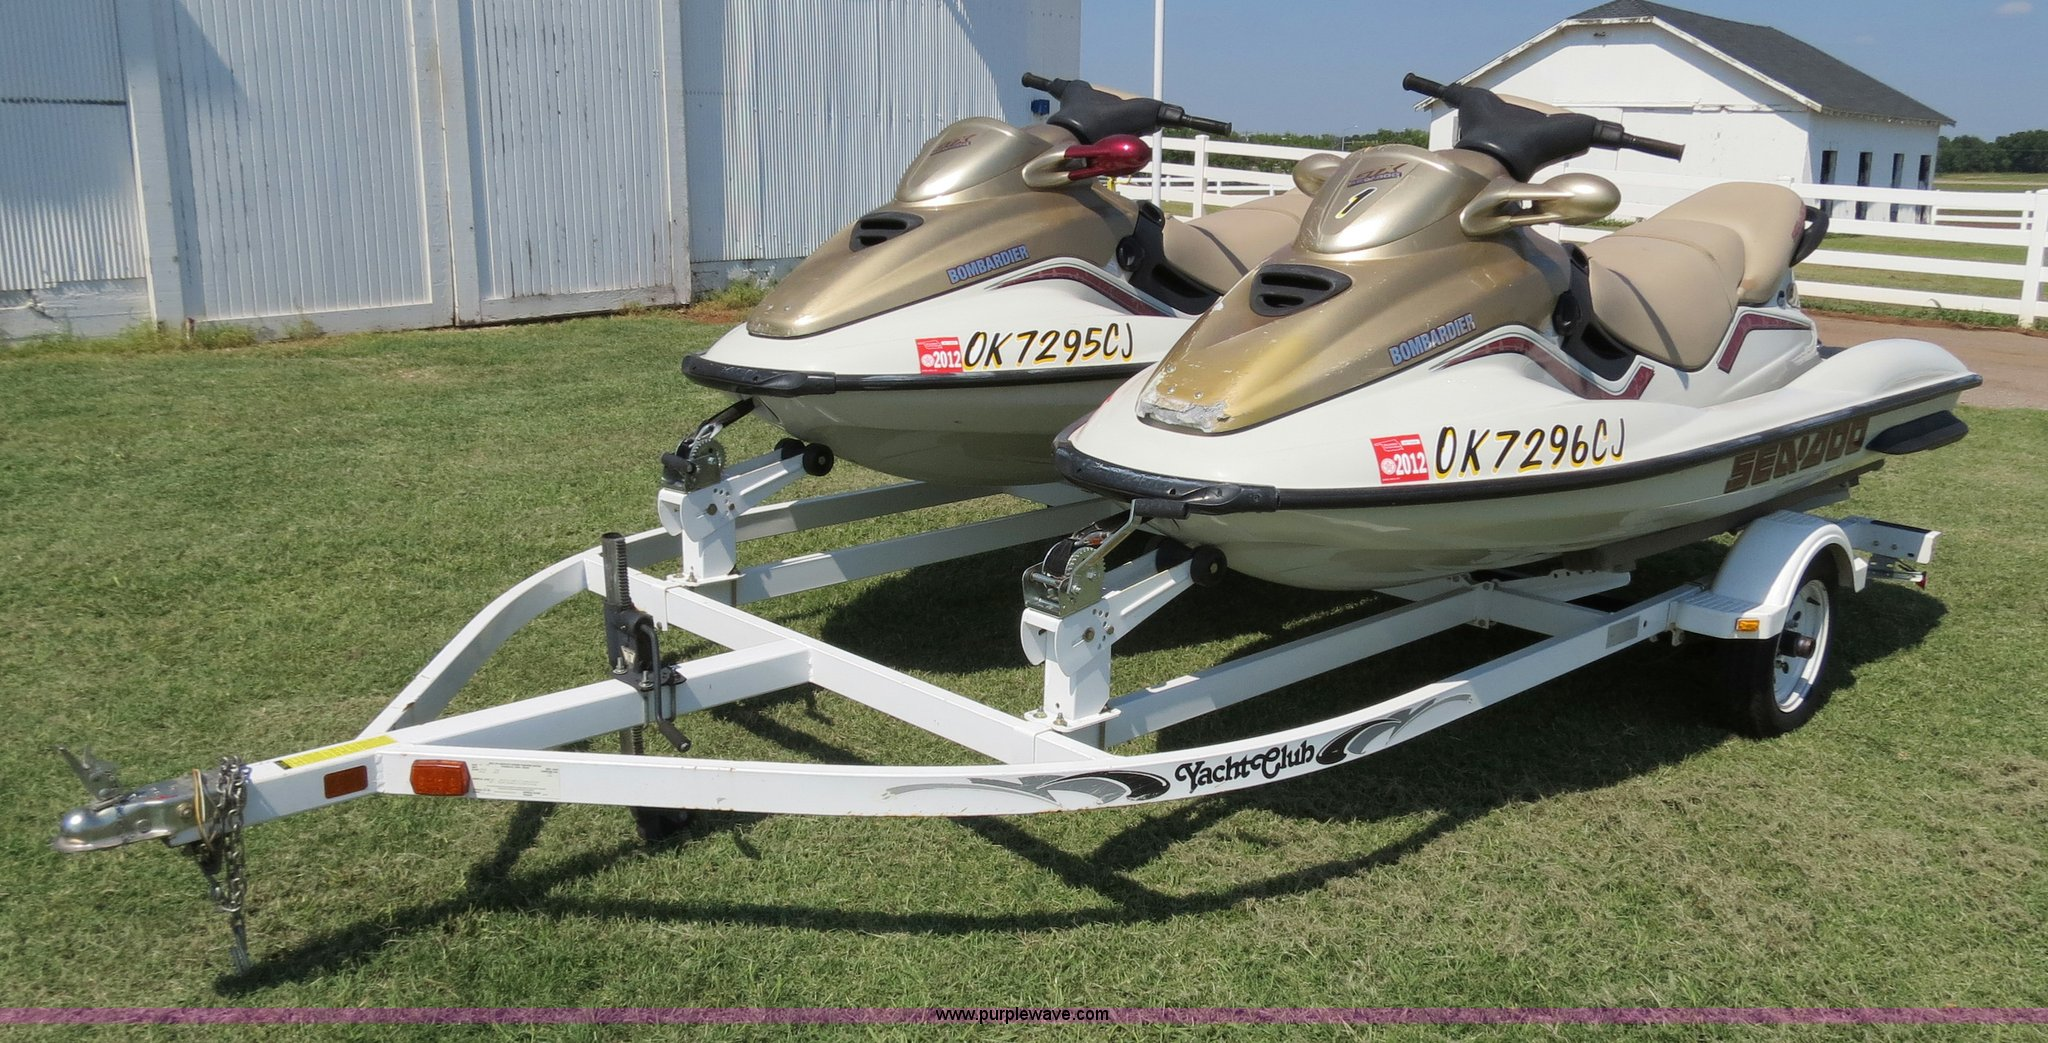 2 1999 Bombar r GTX RFI Sea Doo jet skis with trailer